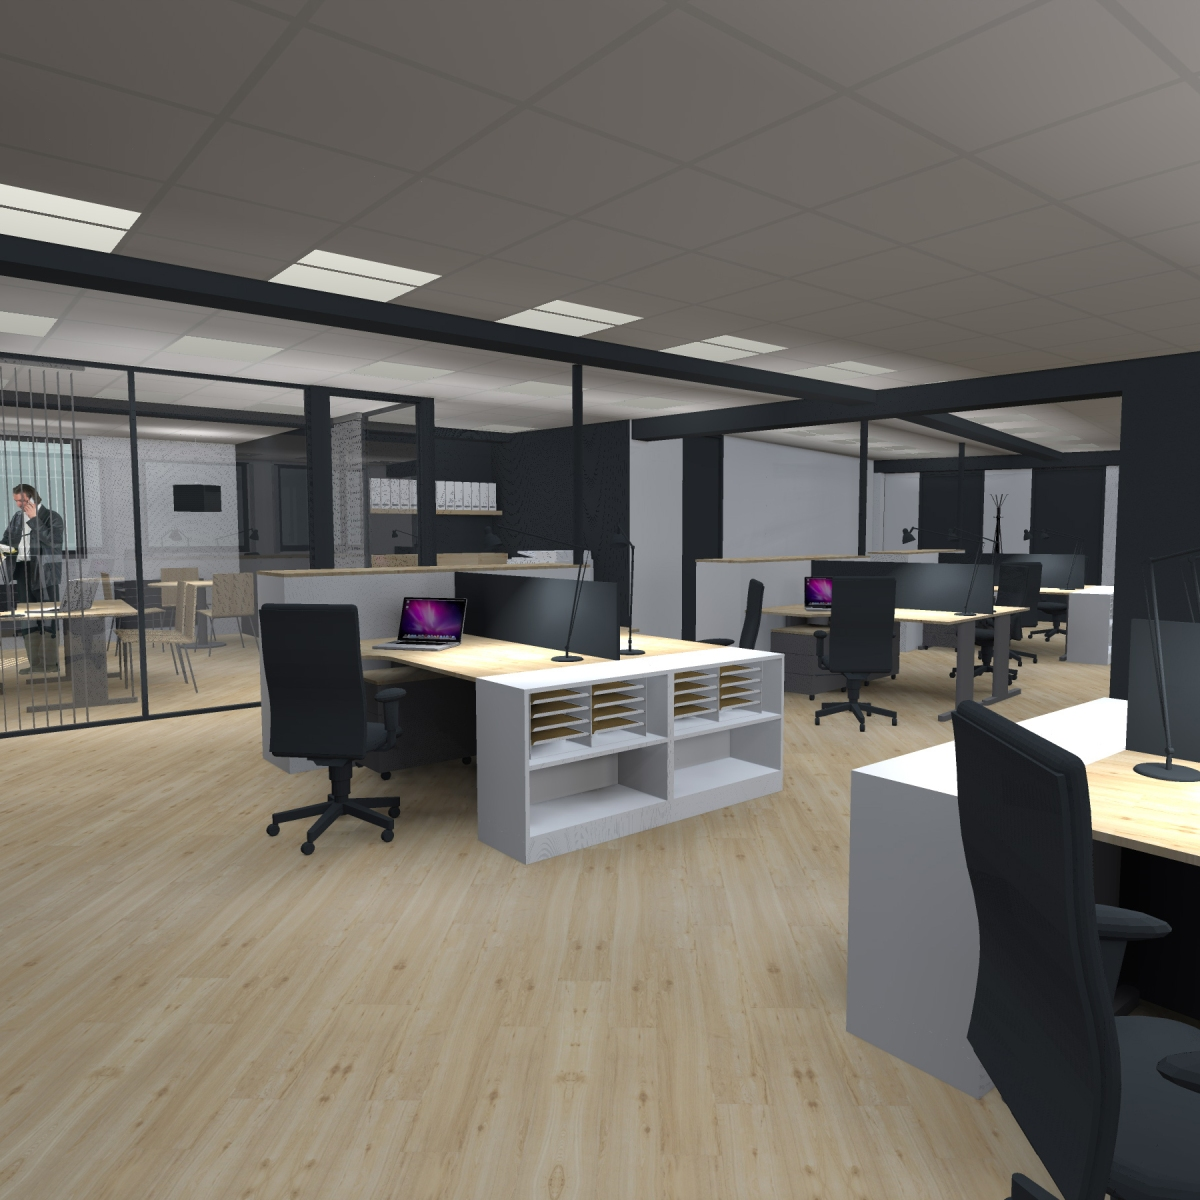 Amenagement de bureaux l d int rieur for Bureau decoration d interieur